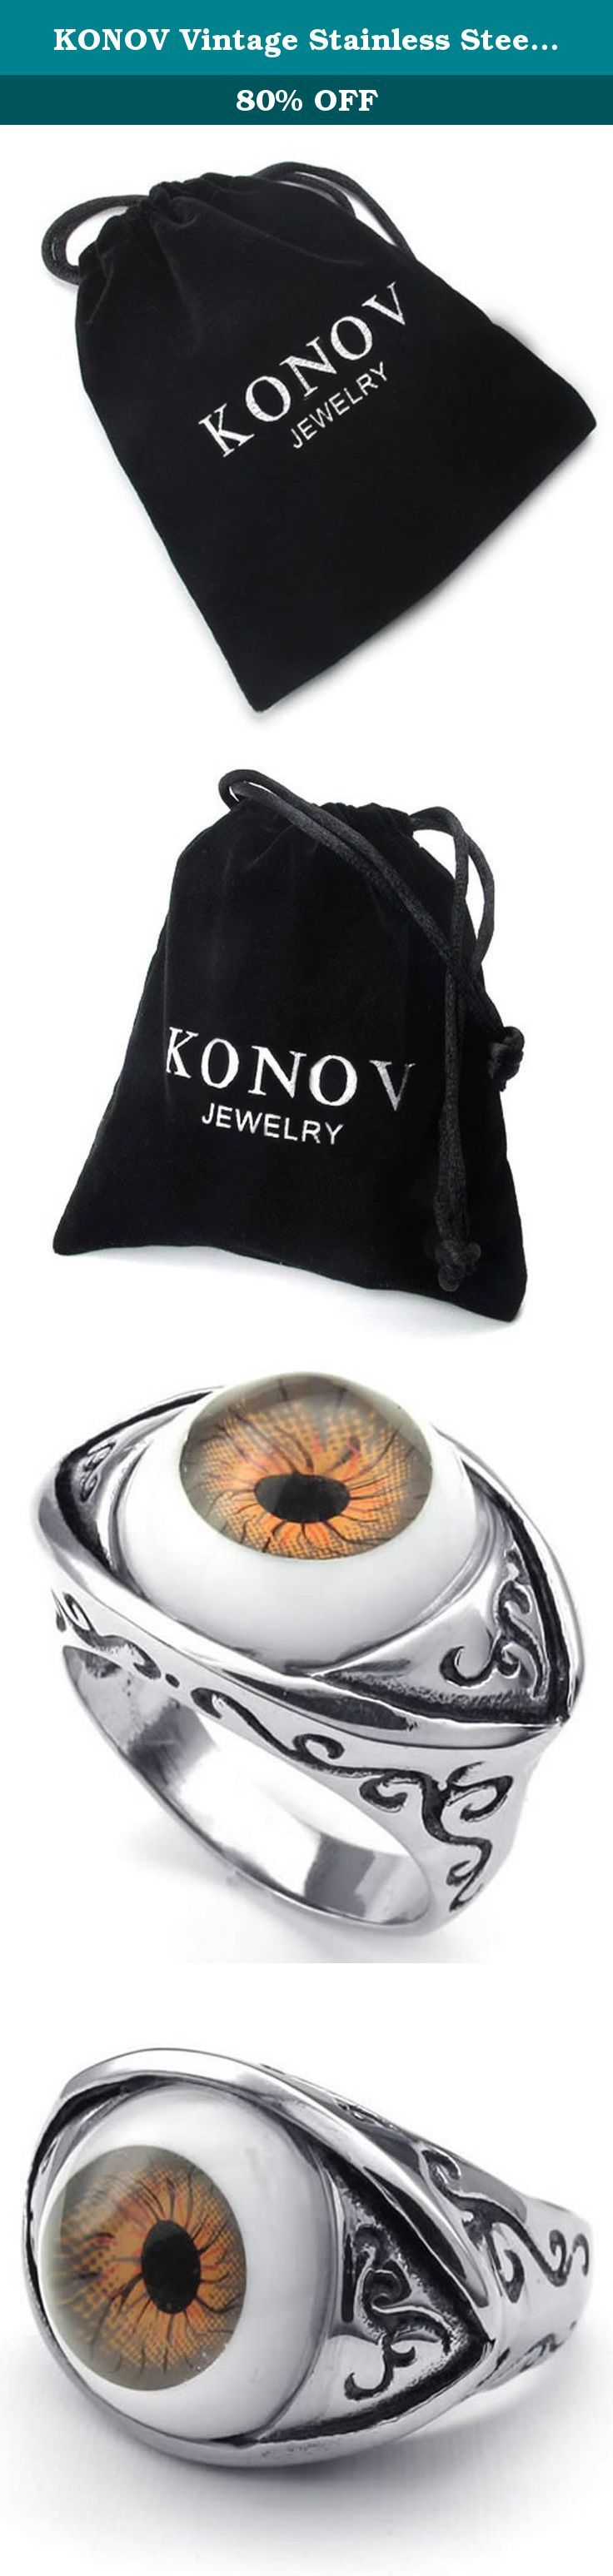 KONOV Vintage Stainless Steel Evil Devil Eye Band Biker Mens Ring, Brown Silver - Size 12. Why choose Stainless Steel Jewelry? Stainless Steel jewelry does not tarnish and oxidize, which can last longer than other jewelries. It is able to endure a lot of wear and tear. And it is amazingly hypoallergenic. Such advantages make it a more popular accessory. Why need Stainless Steel Jewelry? High quality stainless steel has high resistance to rust, corrosion and tarnishing, which requires…